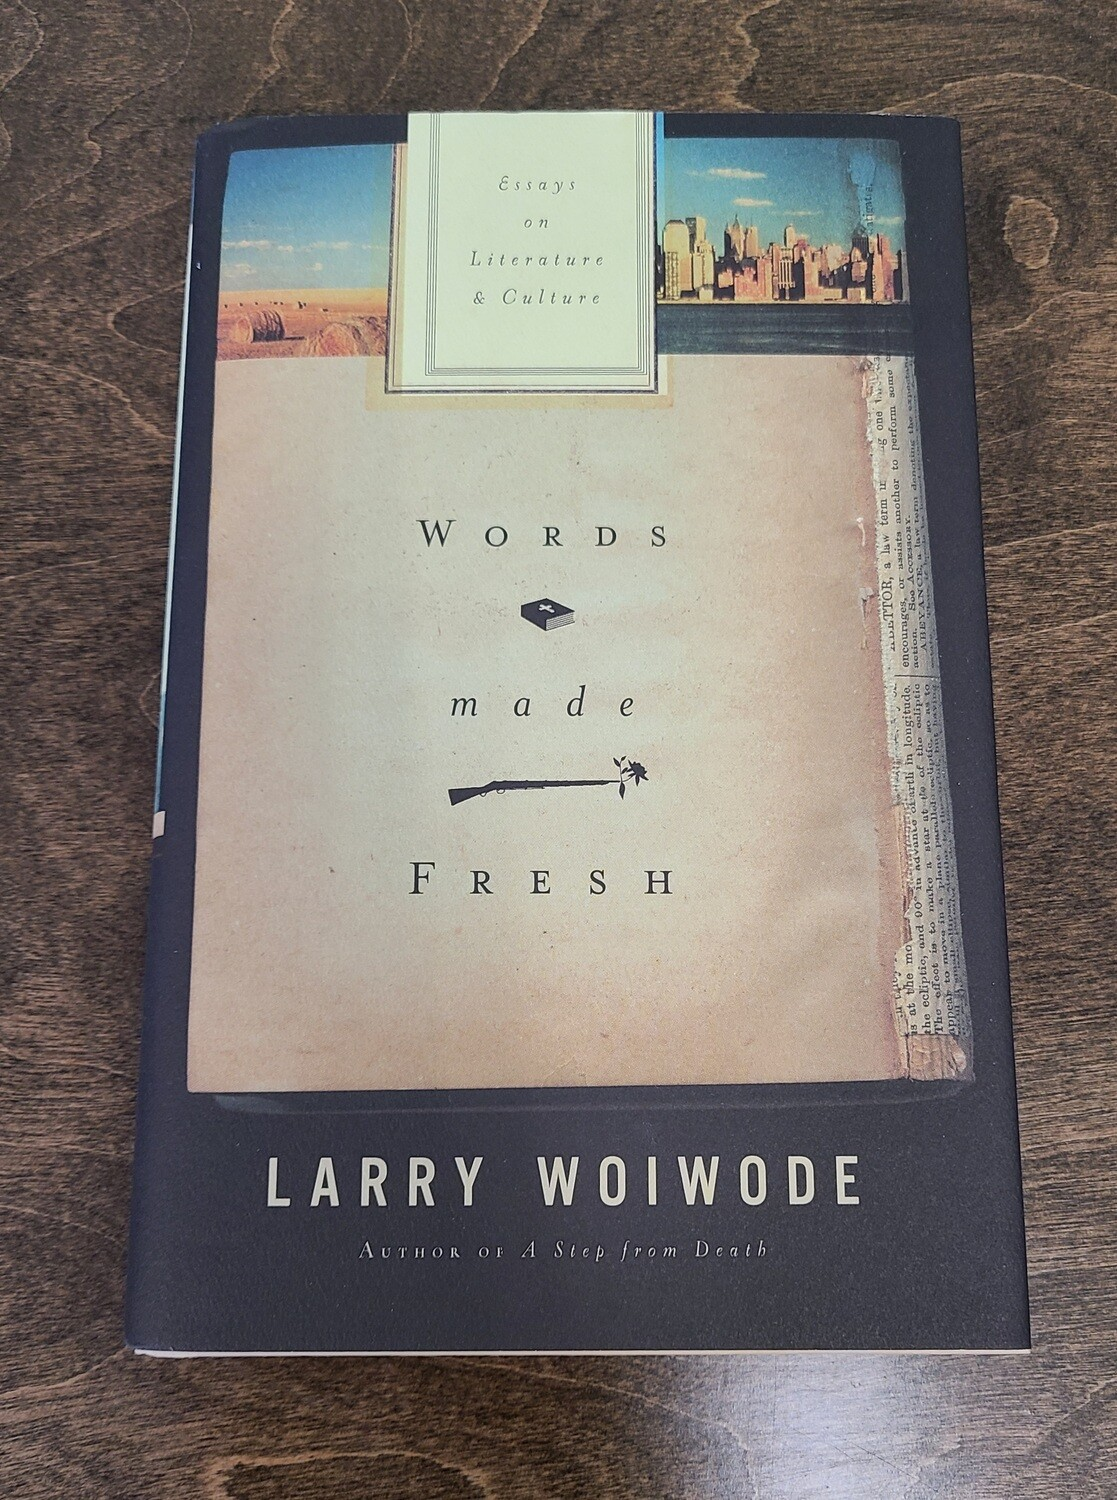 Words made Fresh by Larry Woiwode